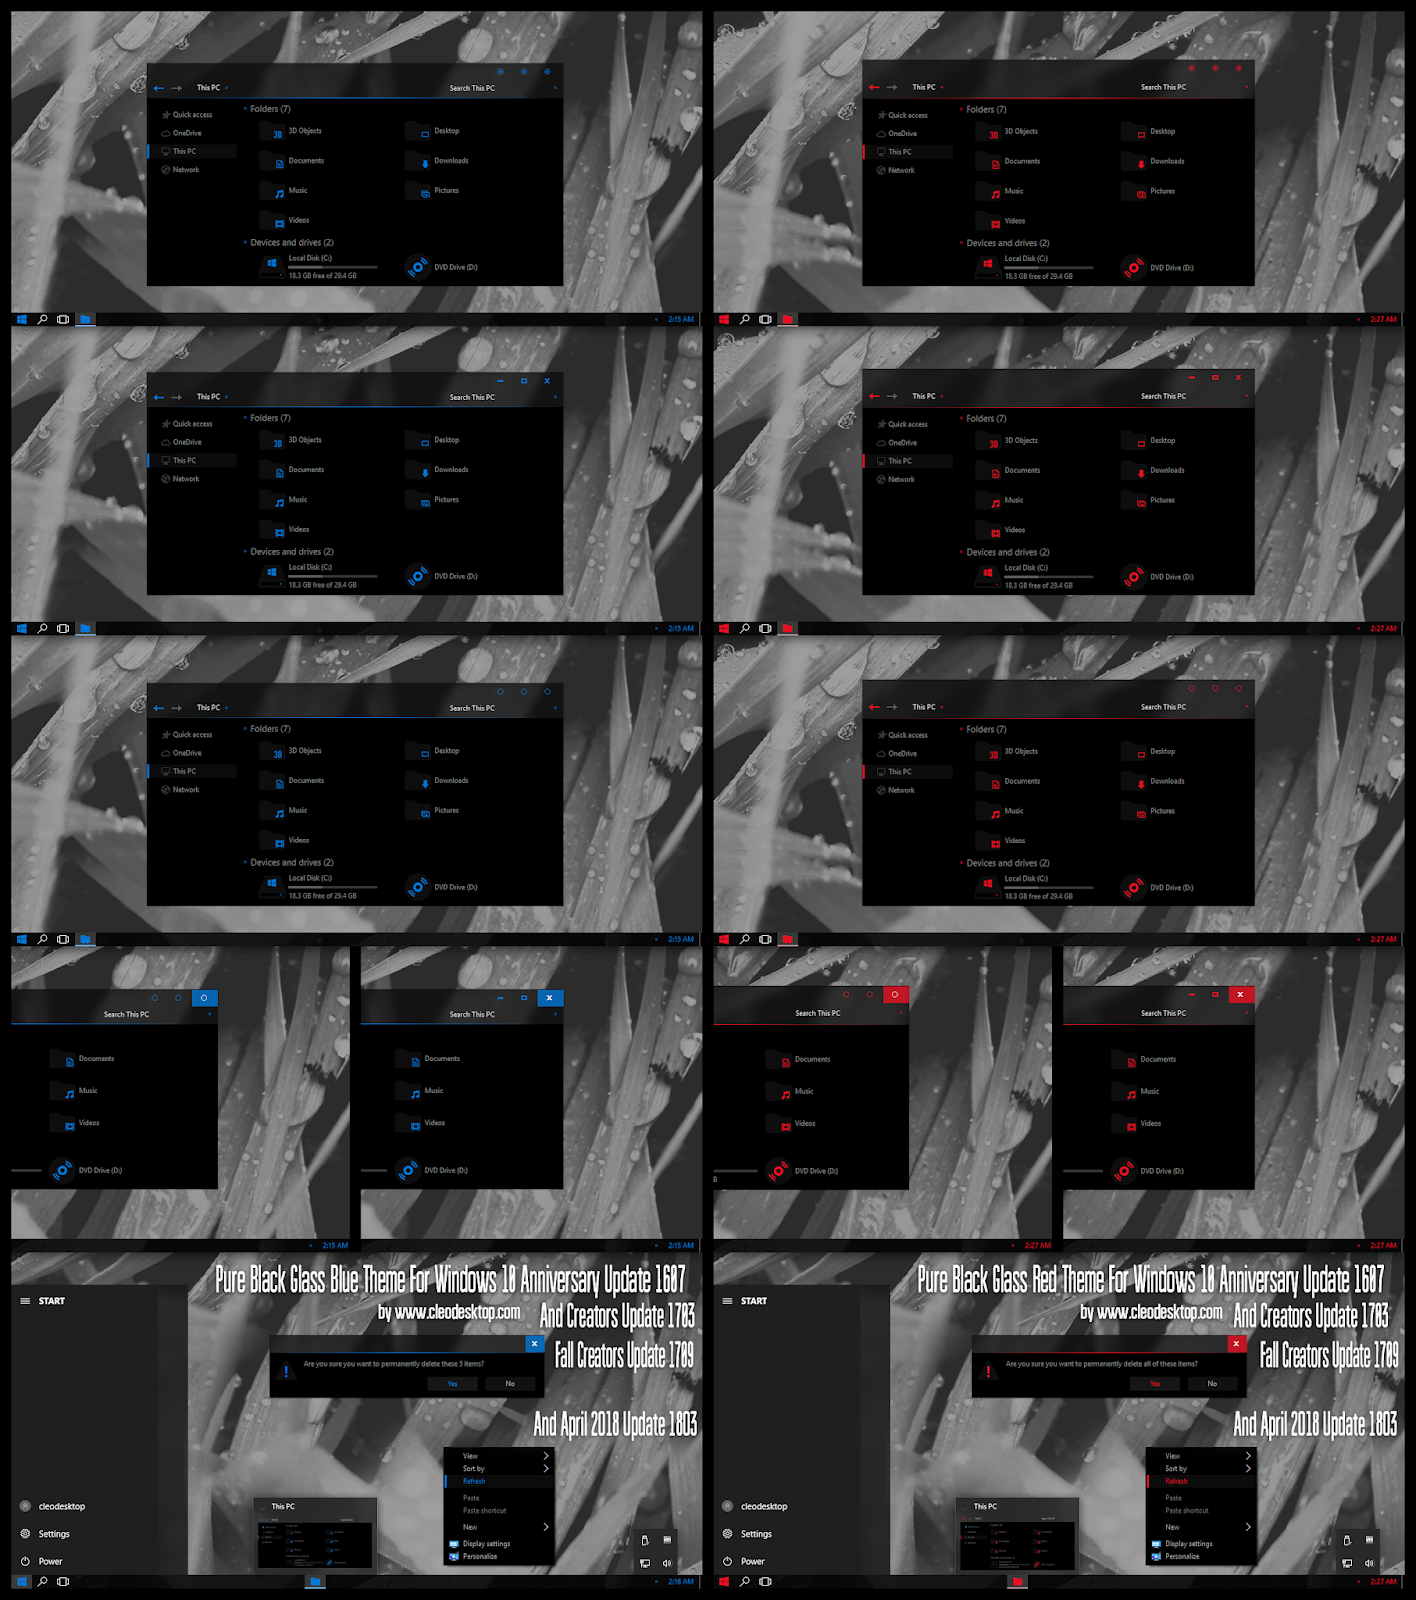 windows10 themes i cleodesktop pure black glass blue and red theme